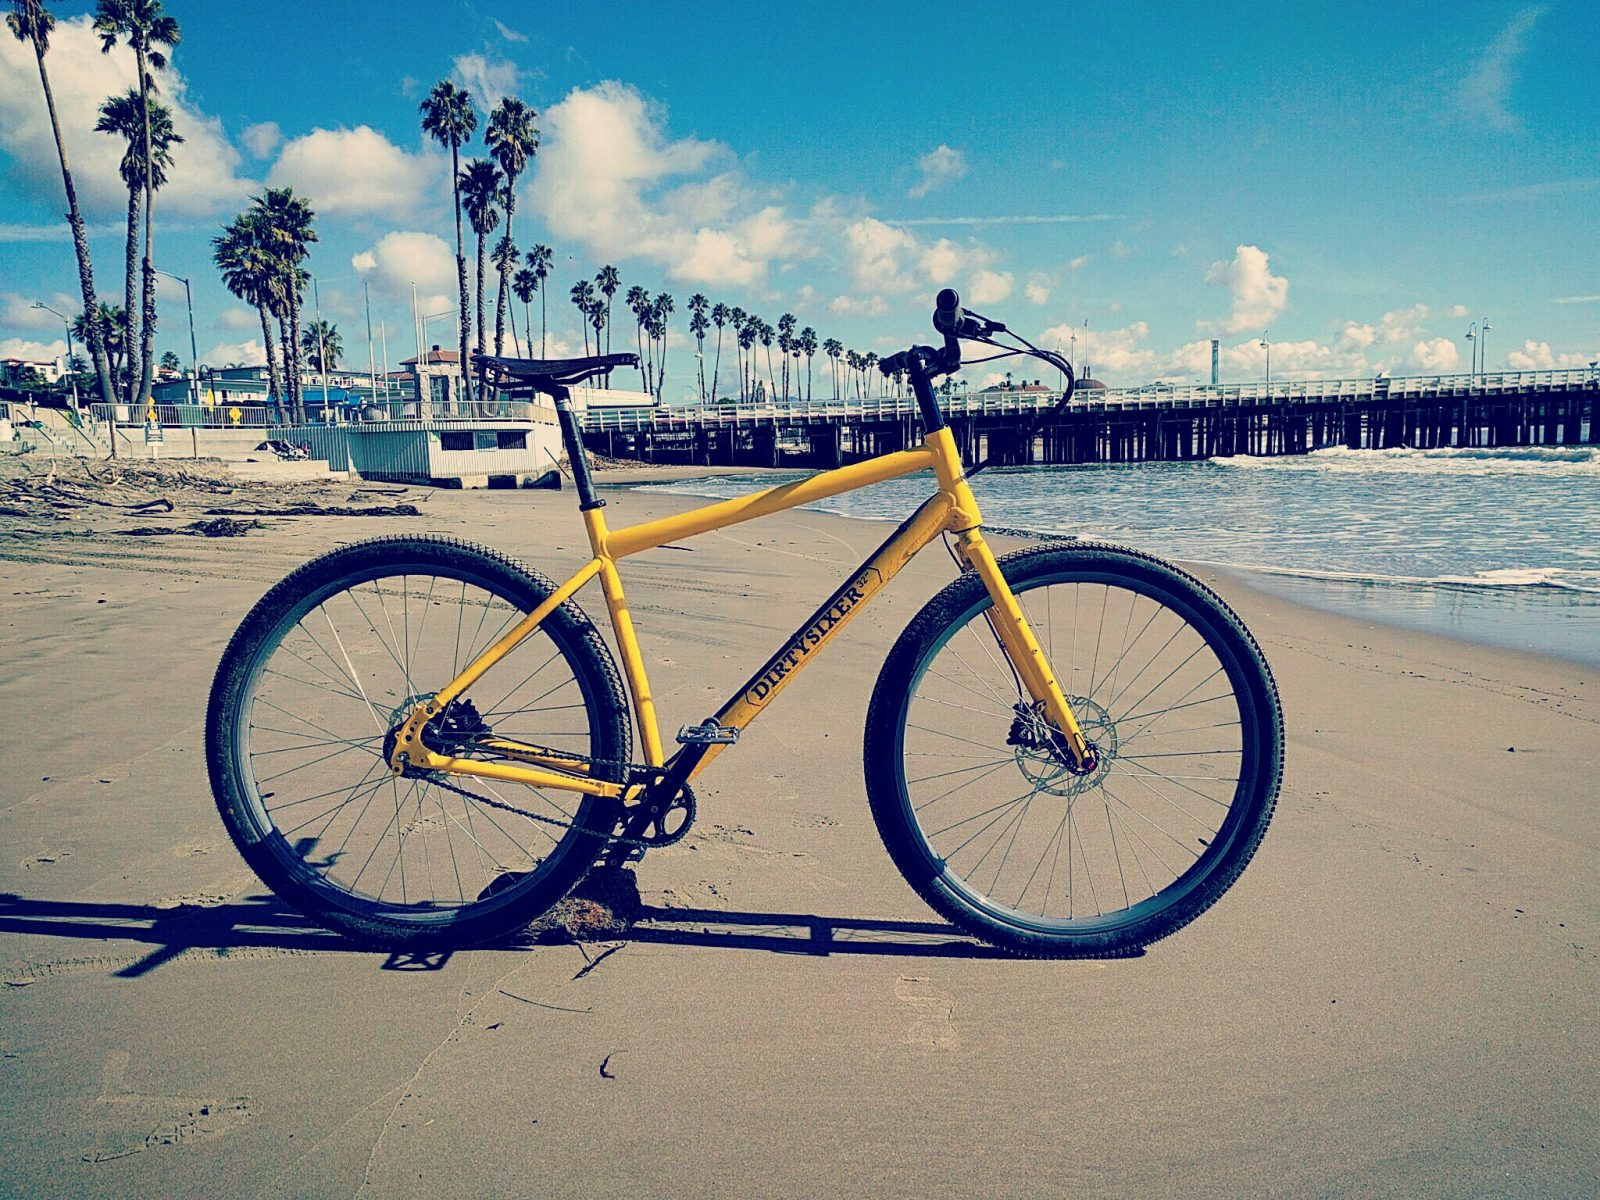 A Tall Bicycle for Exclusively for Tall People: Meet Dirty Sixer